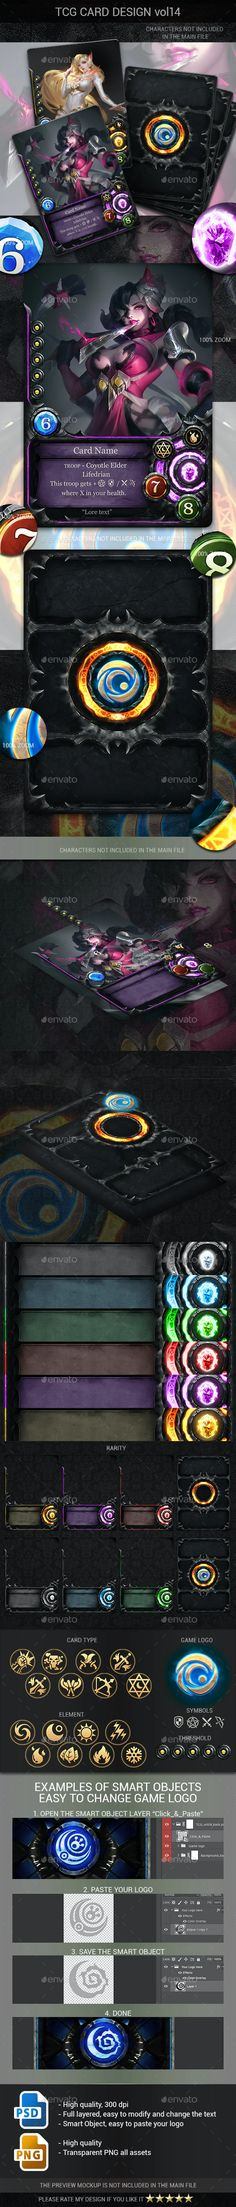 TCG Card Design Vol 14 by B-Gfx | GraphicRiver Game Card Design, Game Interface, Game Assets, Game Logo, Card Games, Artist, Artwork, Cards, Work Of Art